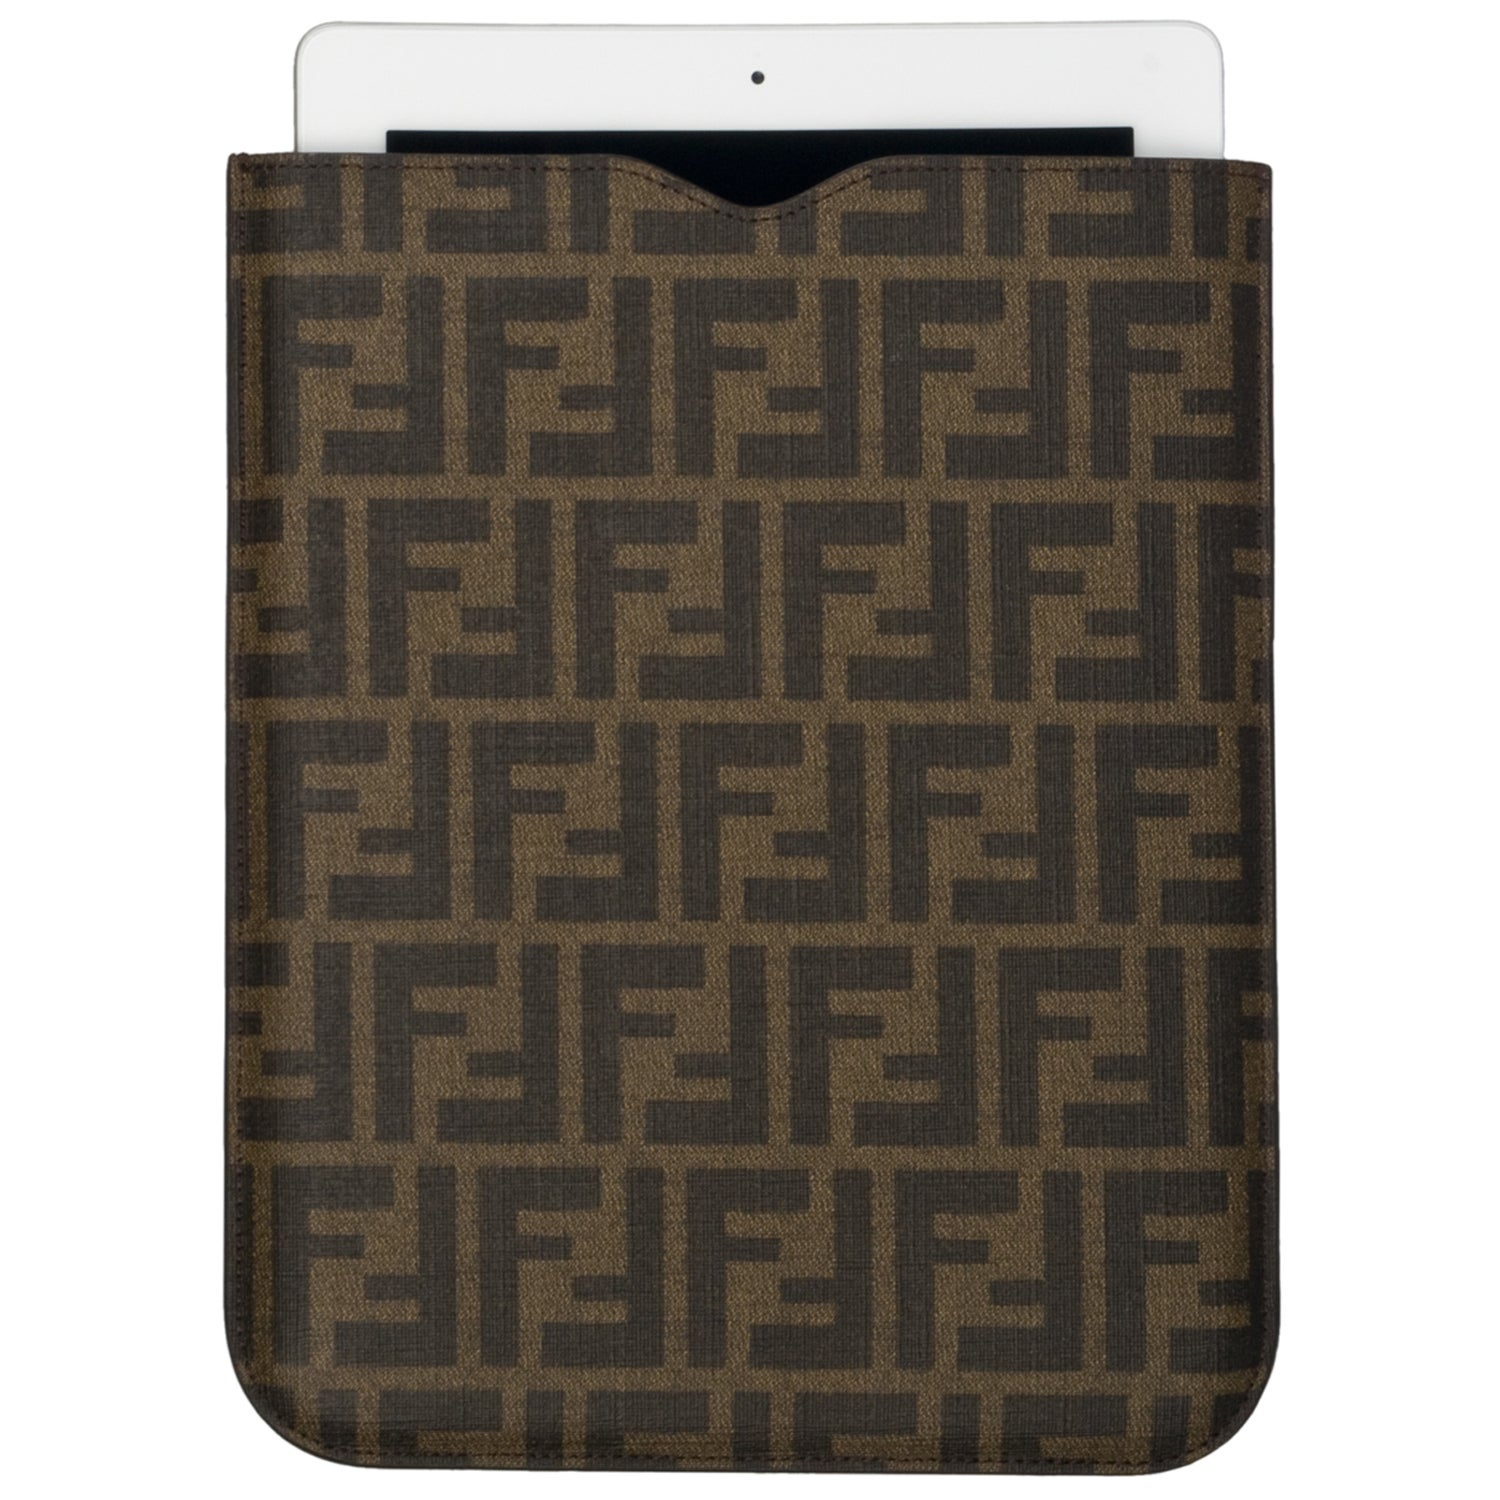 Fendi 'Zucca' Coated Leather iPad Cover